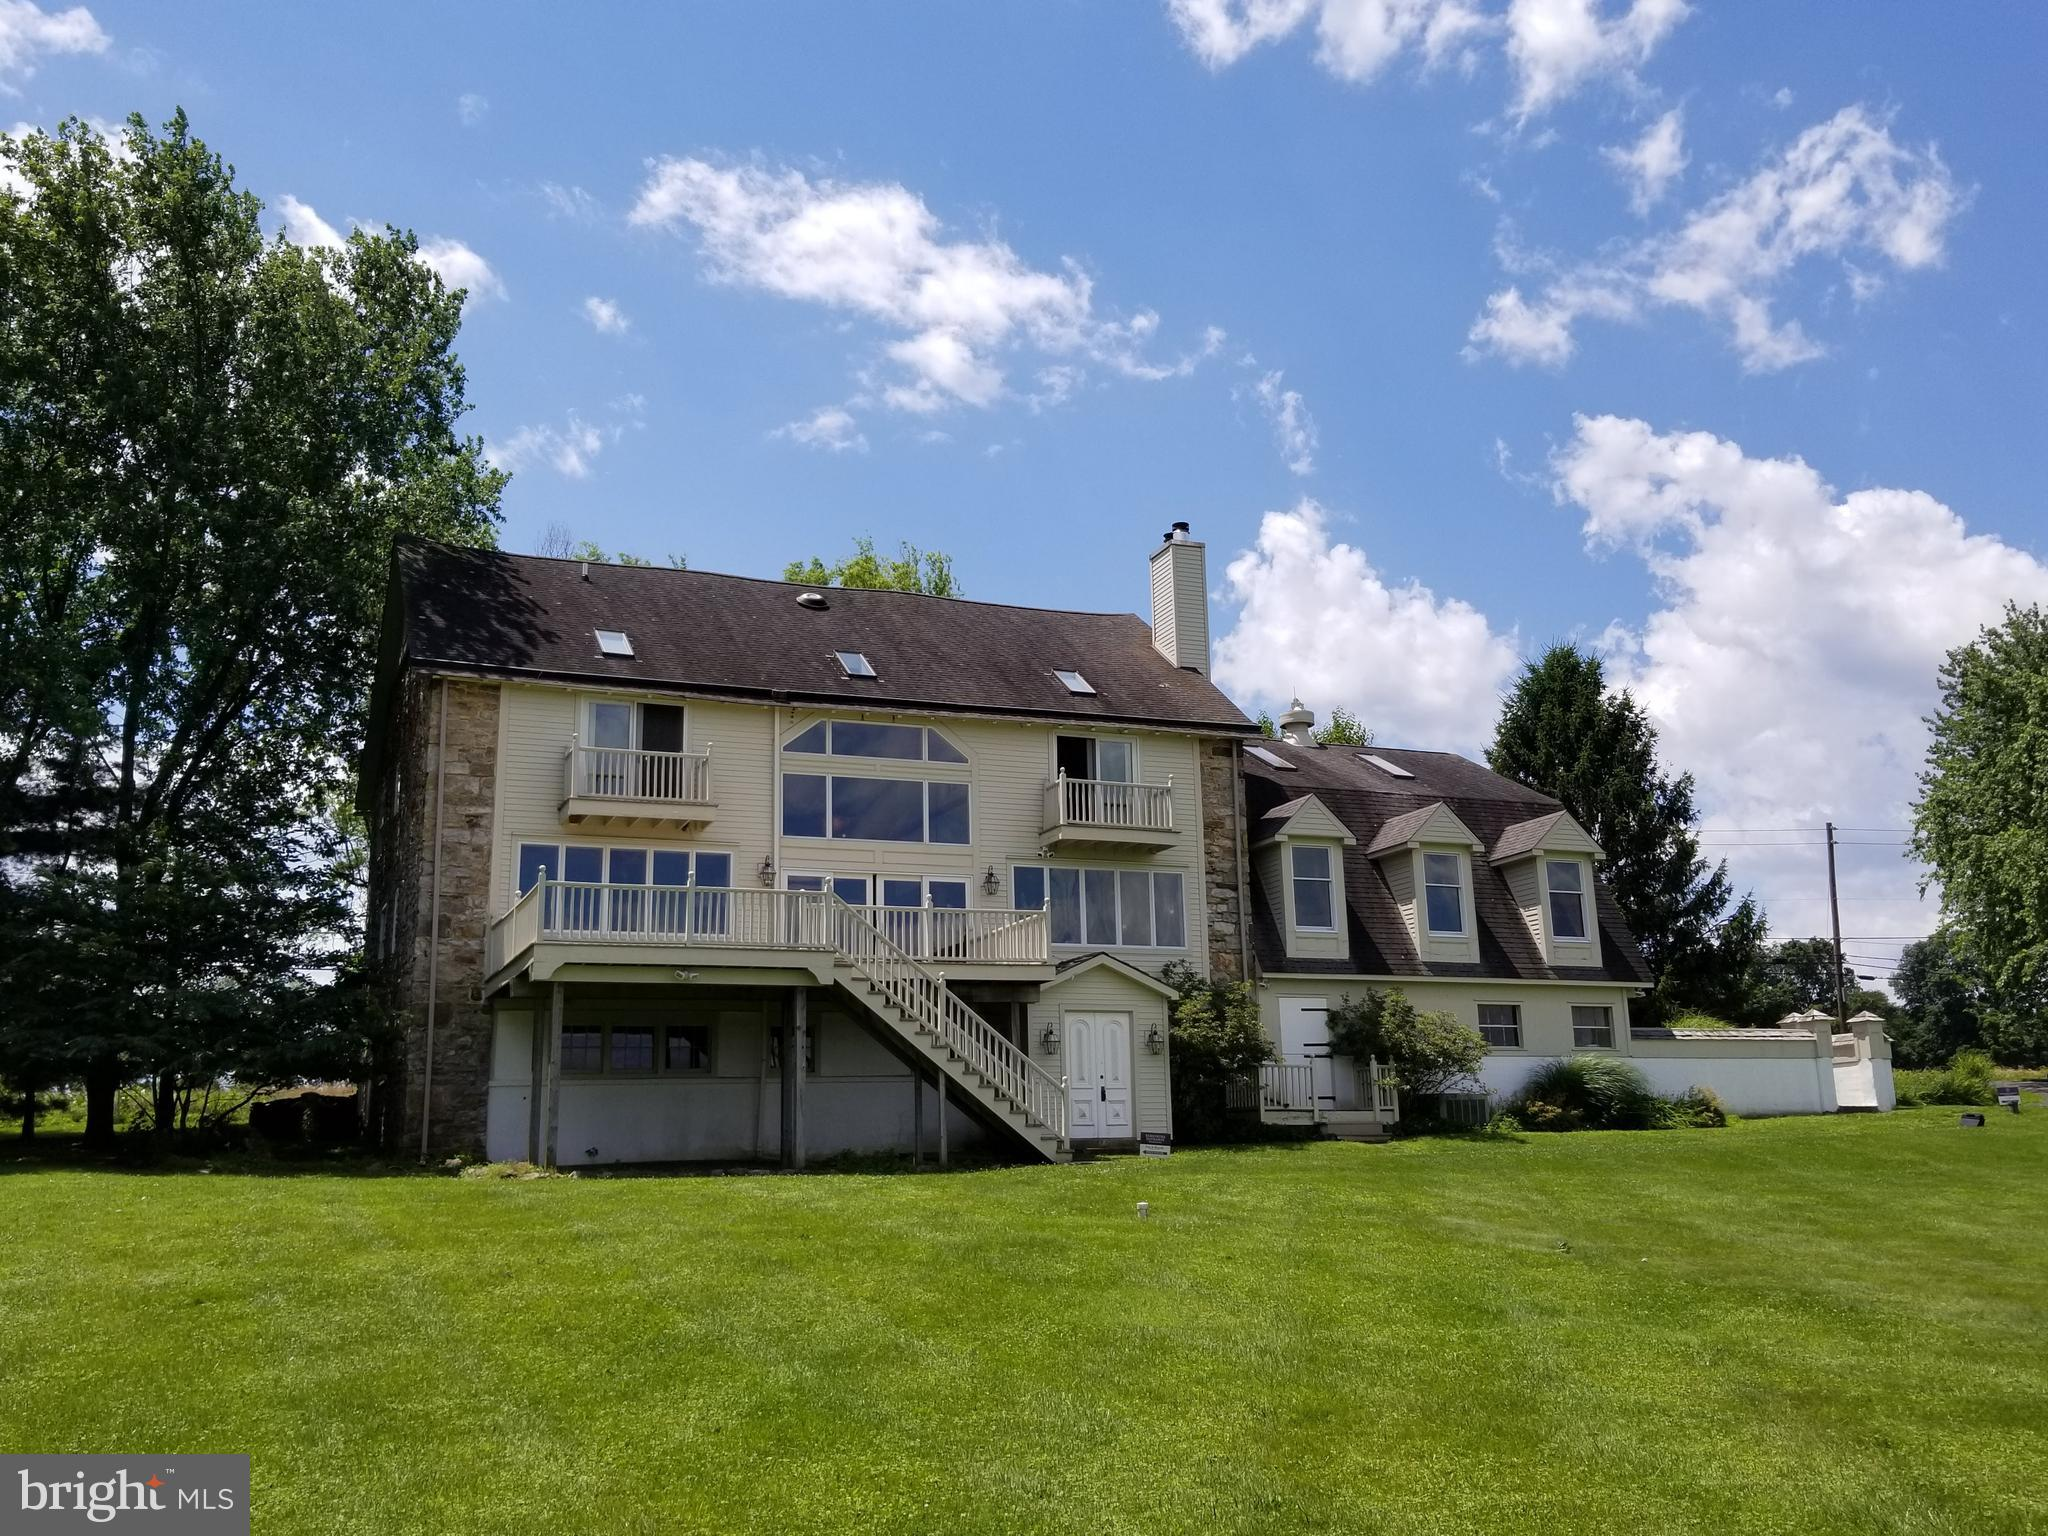 6279 ROUTE 412, RIEGELSVILLE, PA 18077